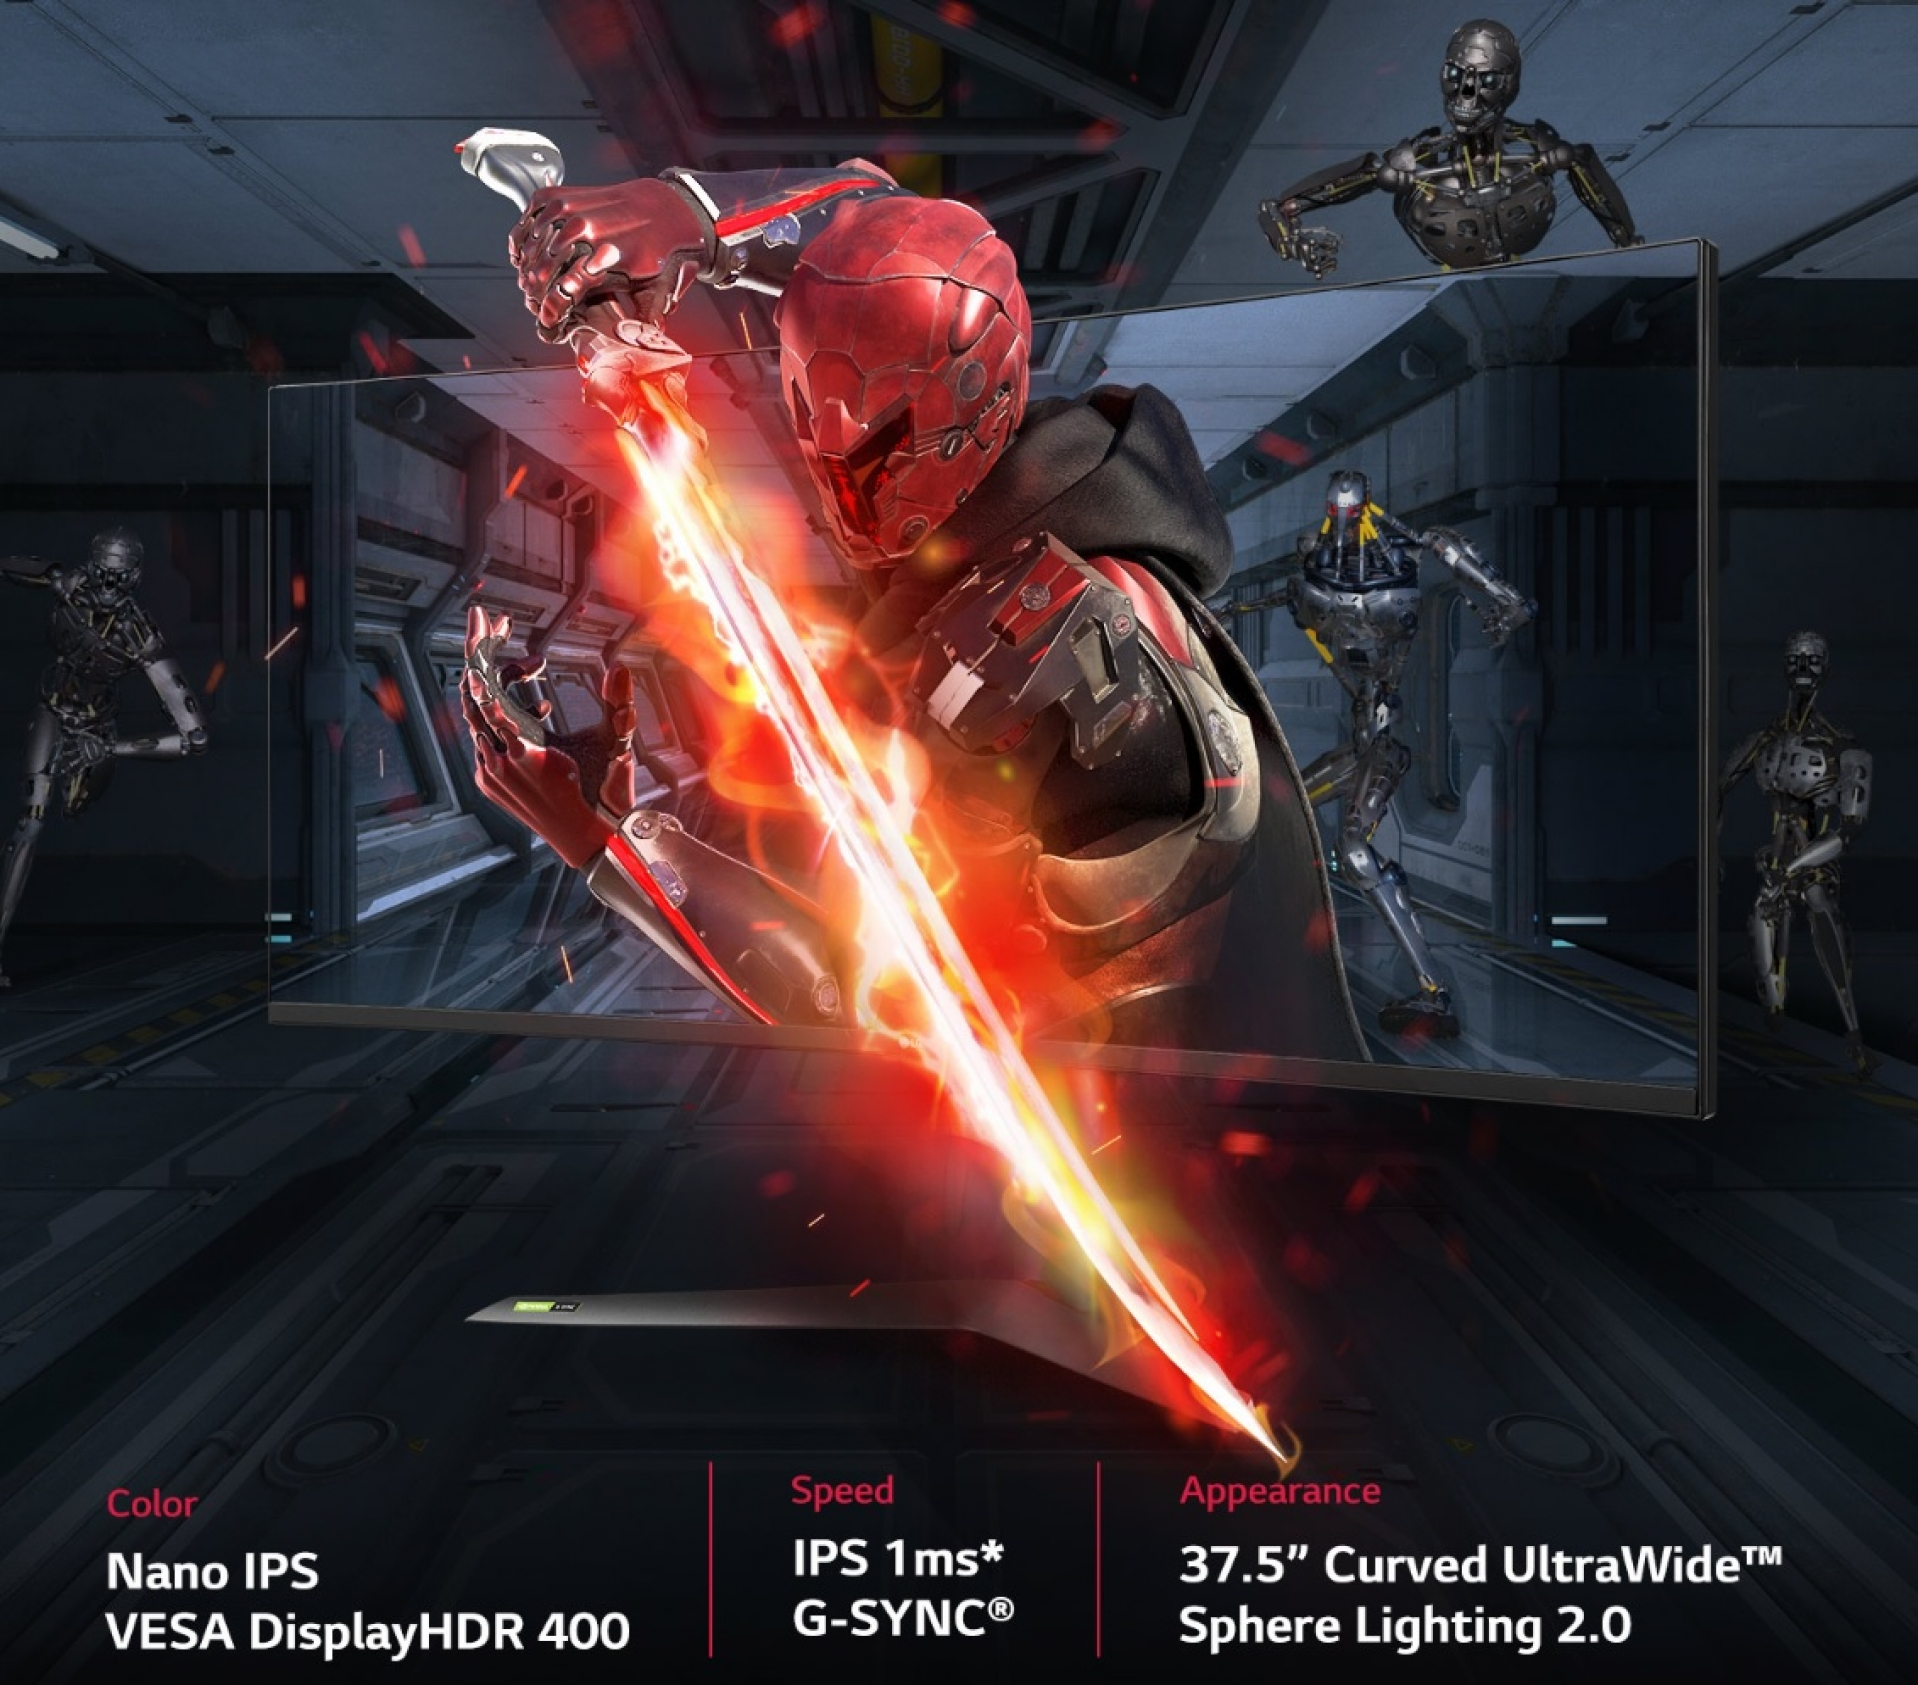 LG reveals the world's first 1ms IPS gaming displays | OC3D News